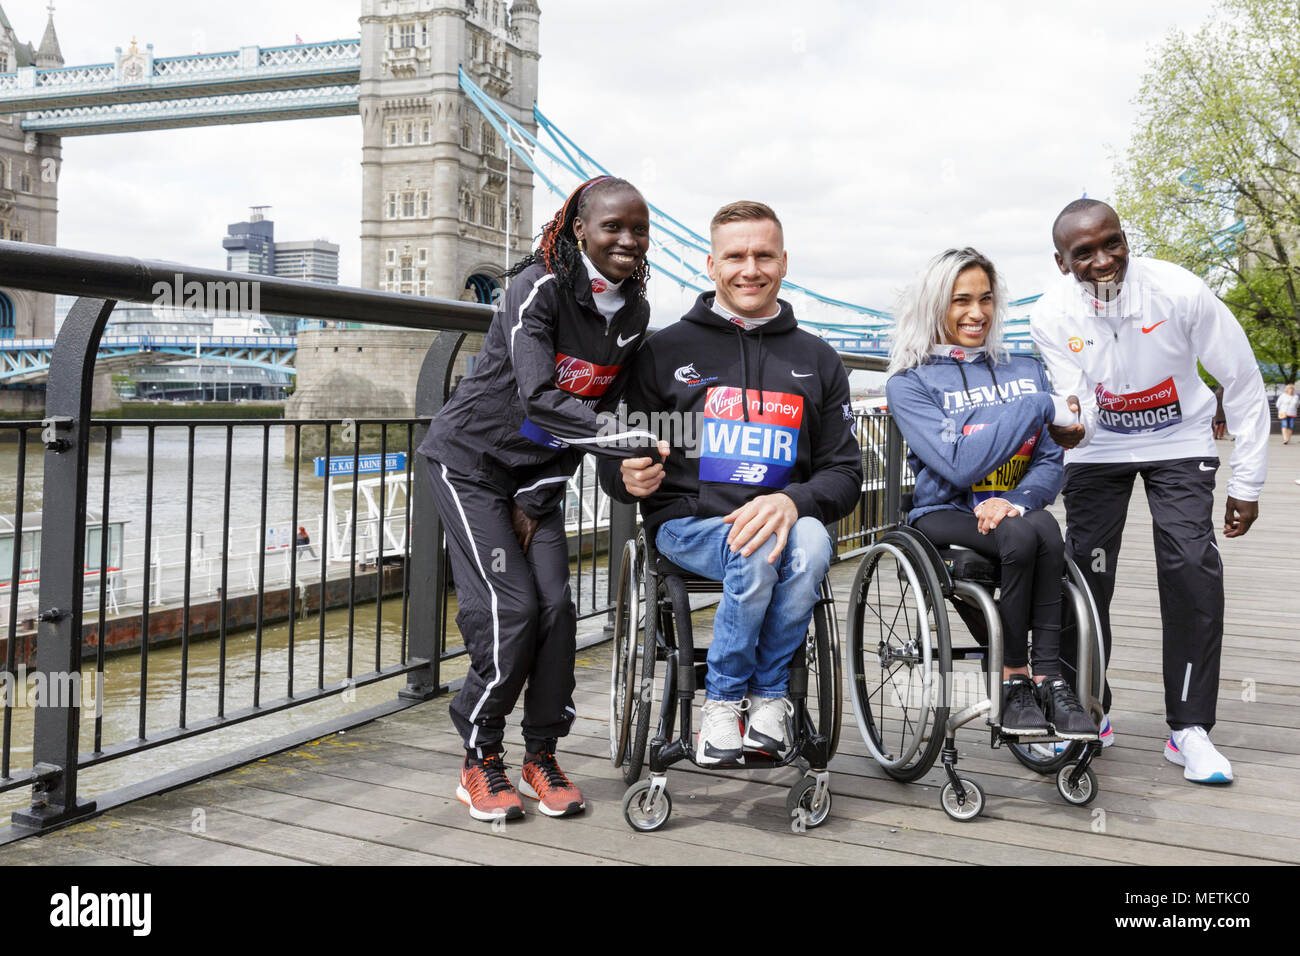 London, 23rd April 2018. The elite women's race winner, Vivian Cheruiyot  (Kenya), and the elite men's race winner, Eliud Kipchoge (Kenya) pose at the Virgin London Marathon 2018 champions photocall with Australian Madison de Rozario who won the women's wheelchair race, and Great Britain and Northern Ireland's David Weir, who won his eighth London Marathon men's wheelchair title. Credit: Imageplotter News and Sports/Alamy Live News Stock Photo